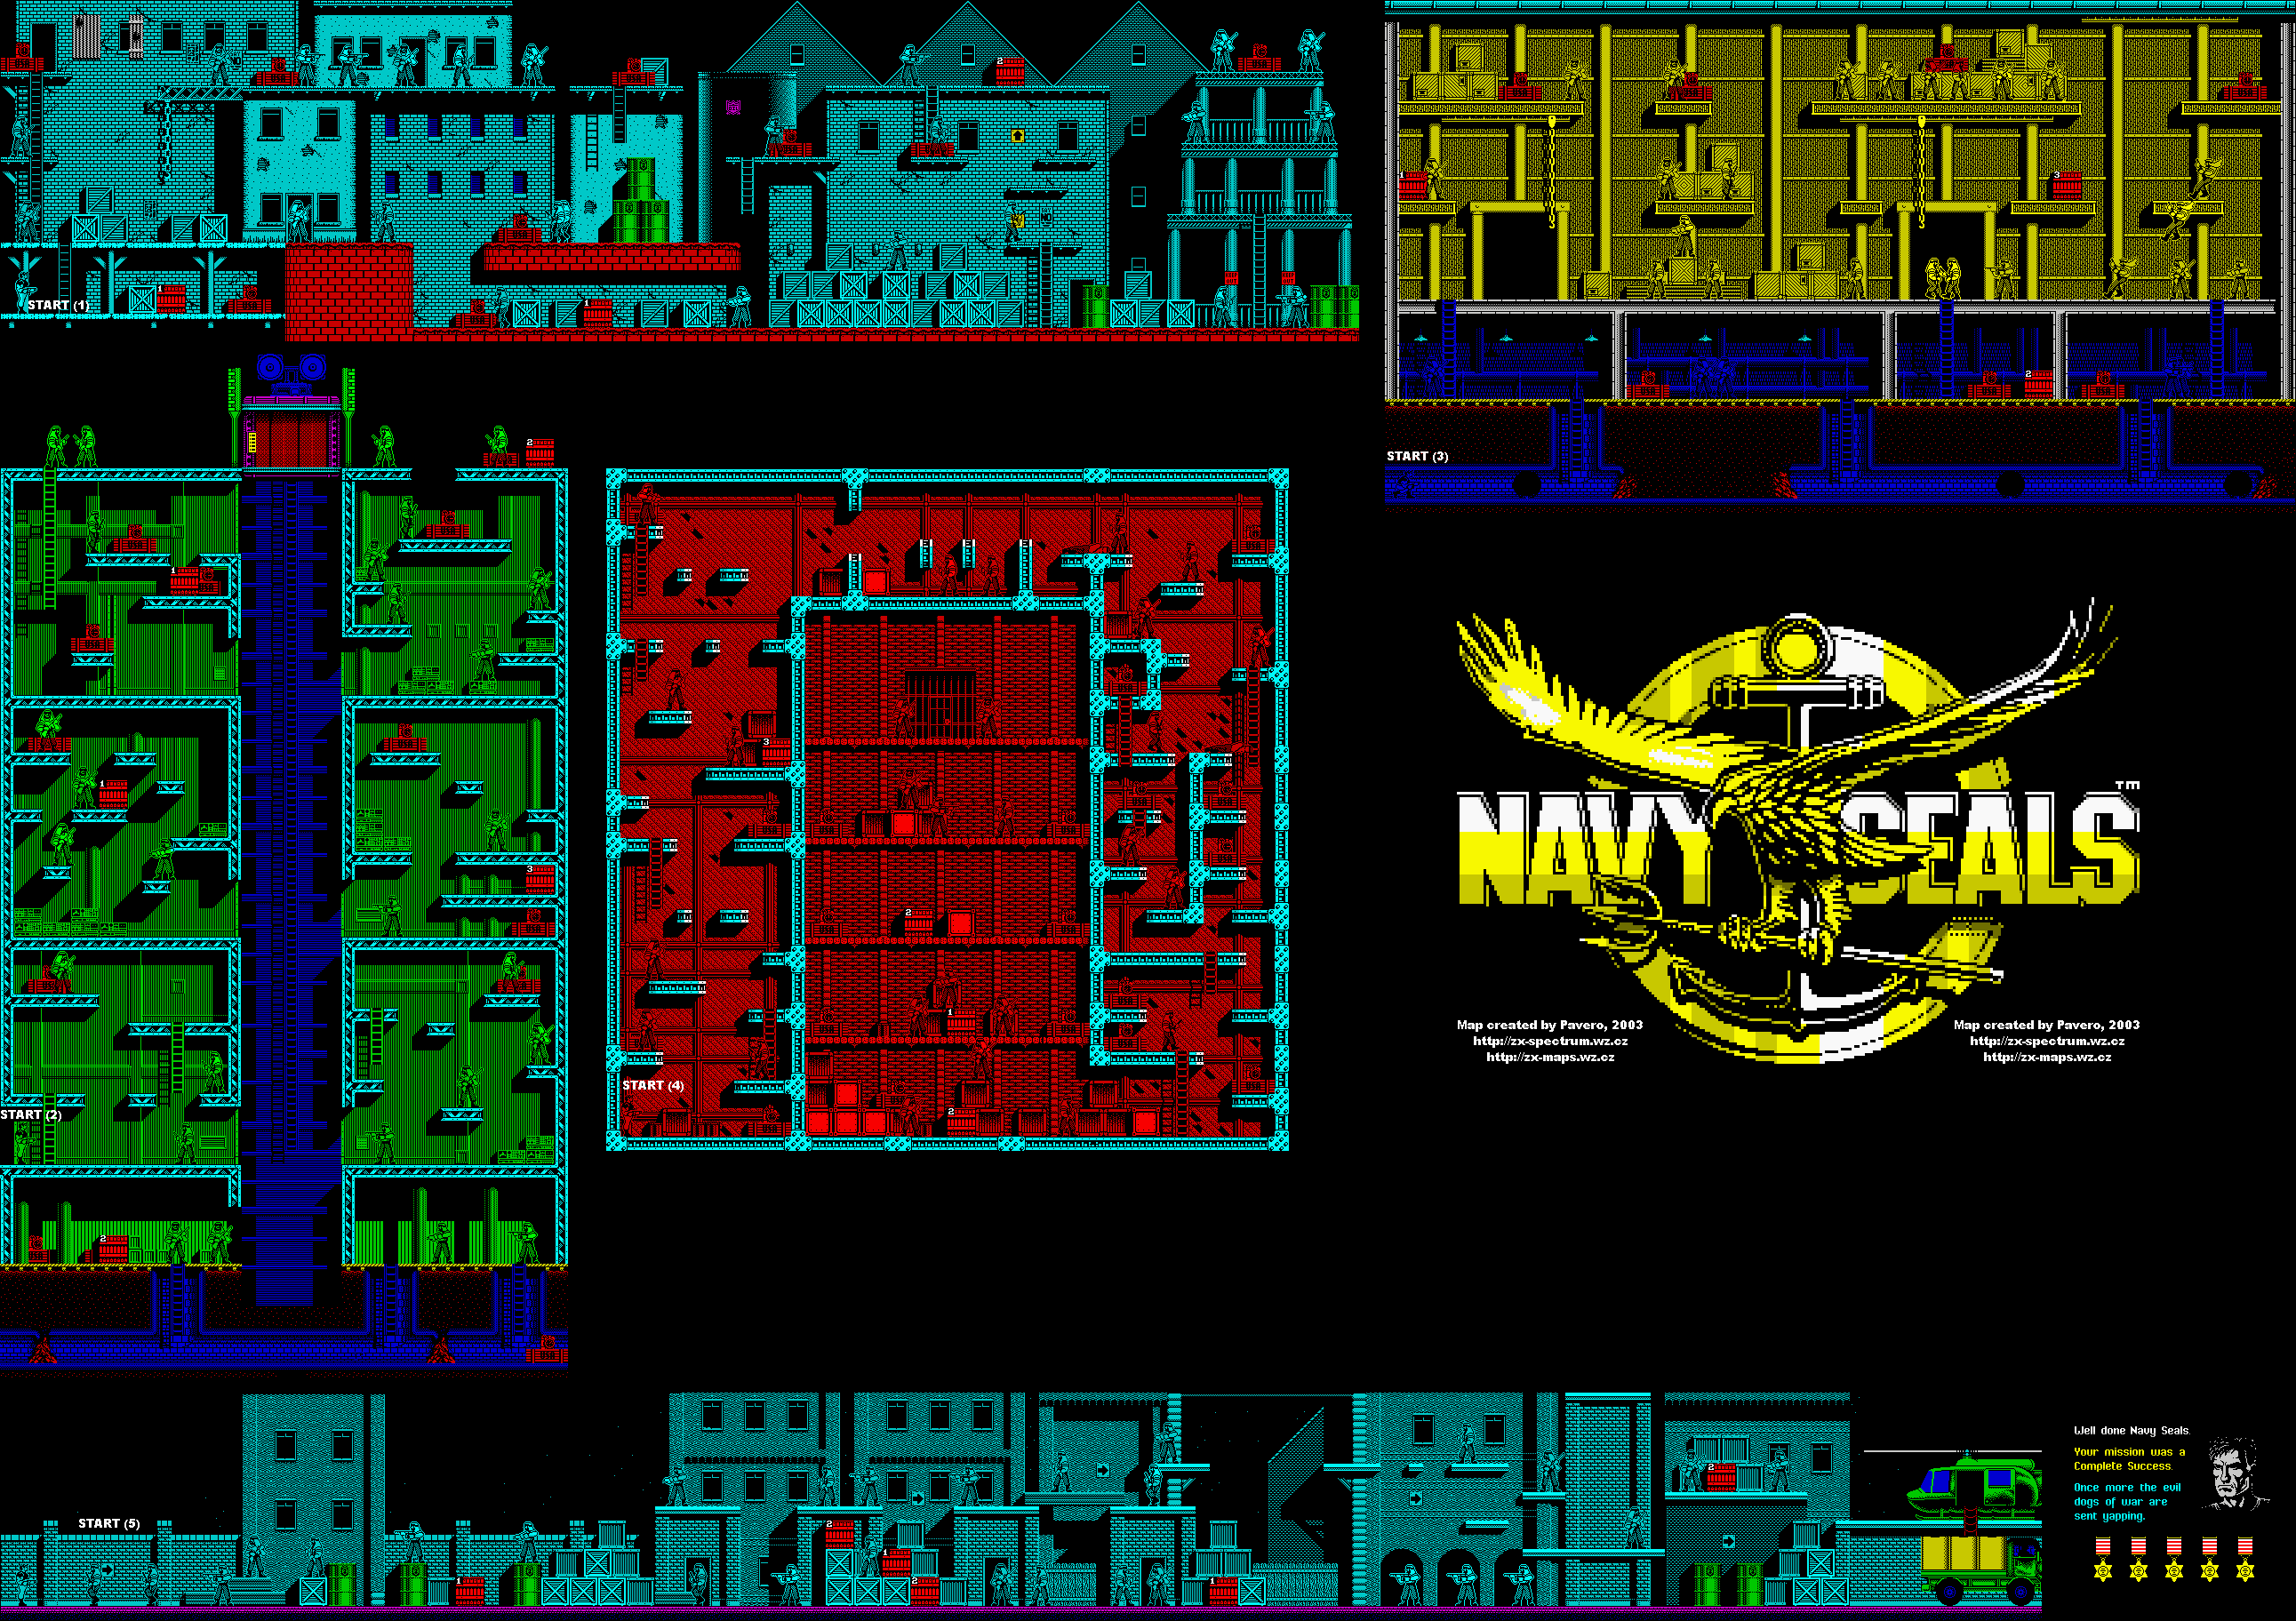 Navy Seals 1 - The Map